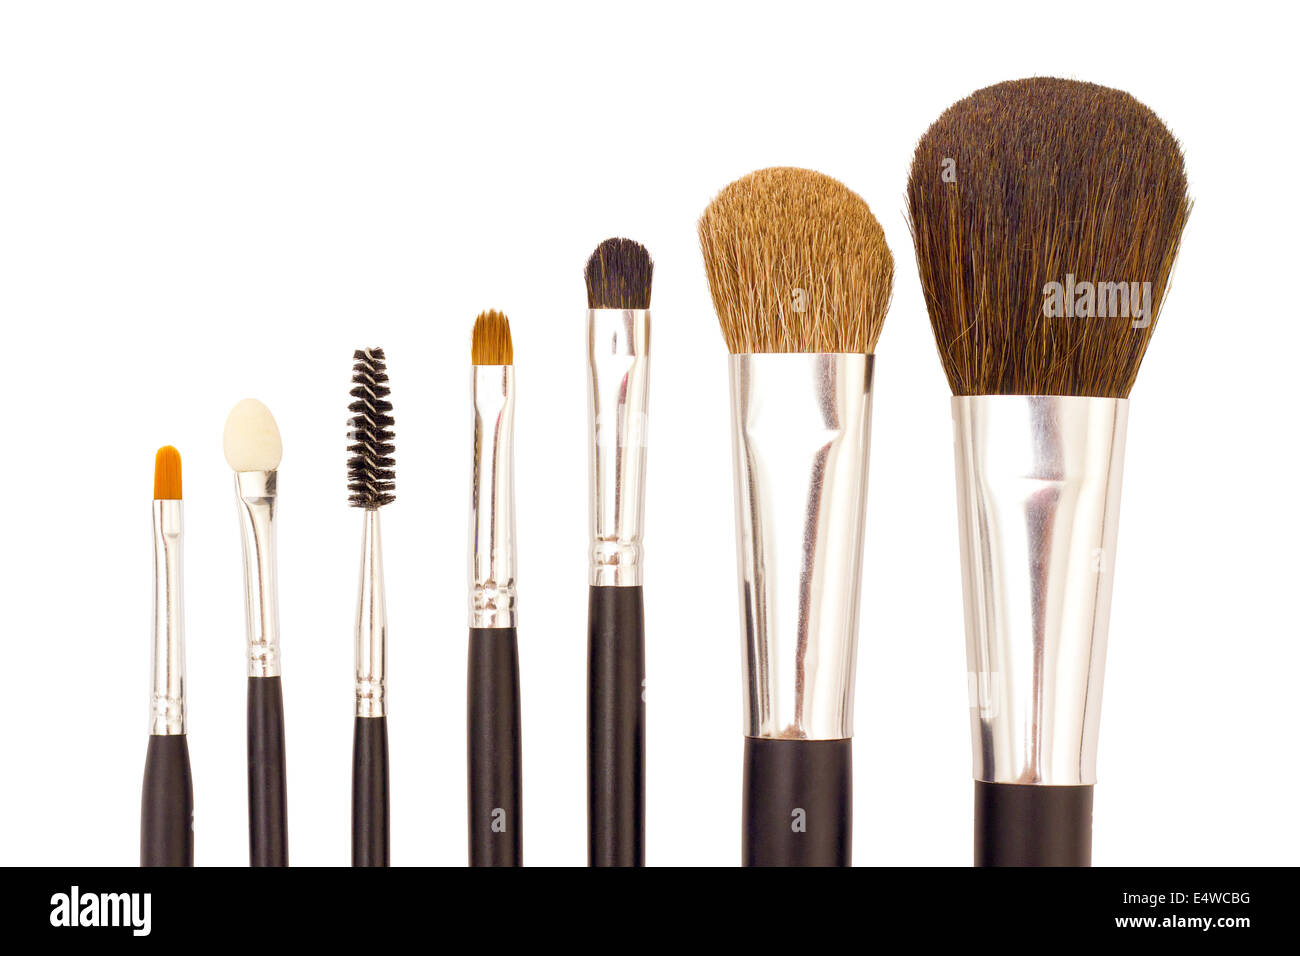 A set of brushes for applying makeup - Stock Image